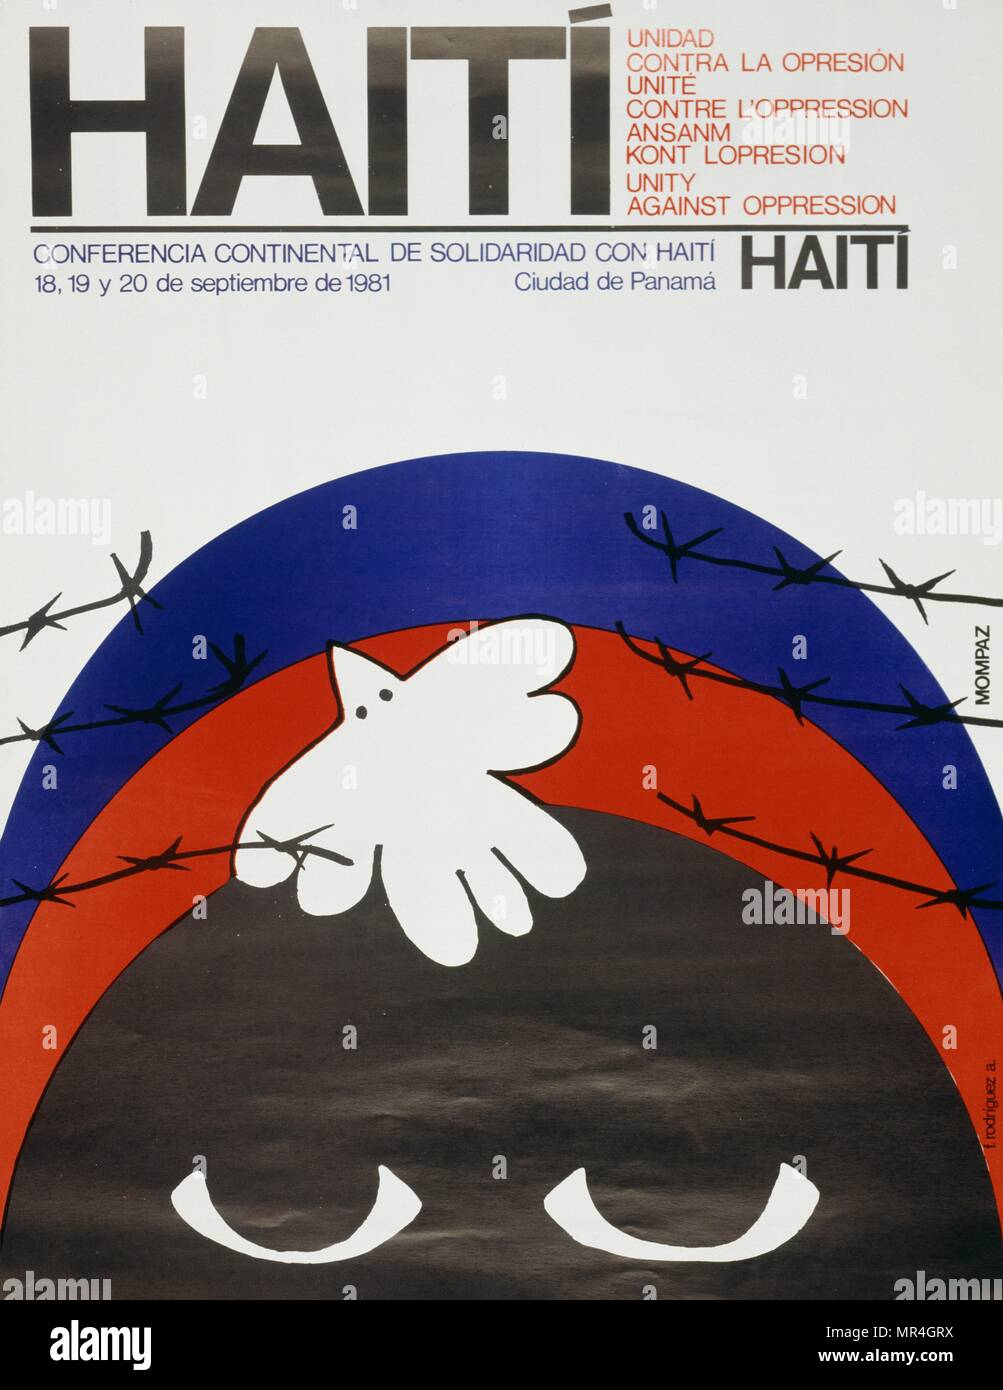 Programme for a human rights conference on Haiti held in Panama City. 1981 - Stock Image